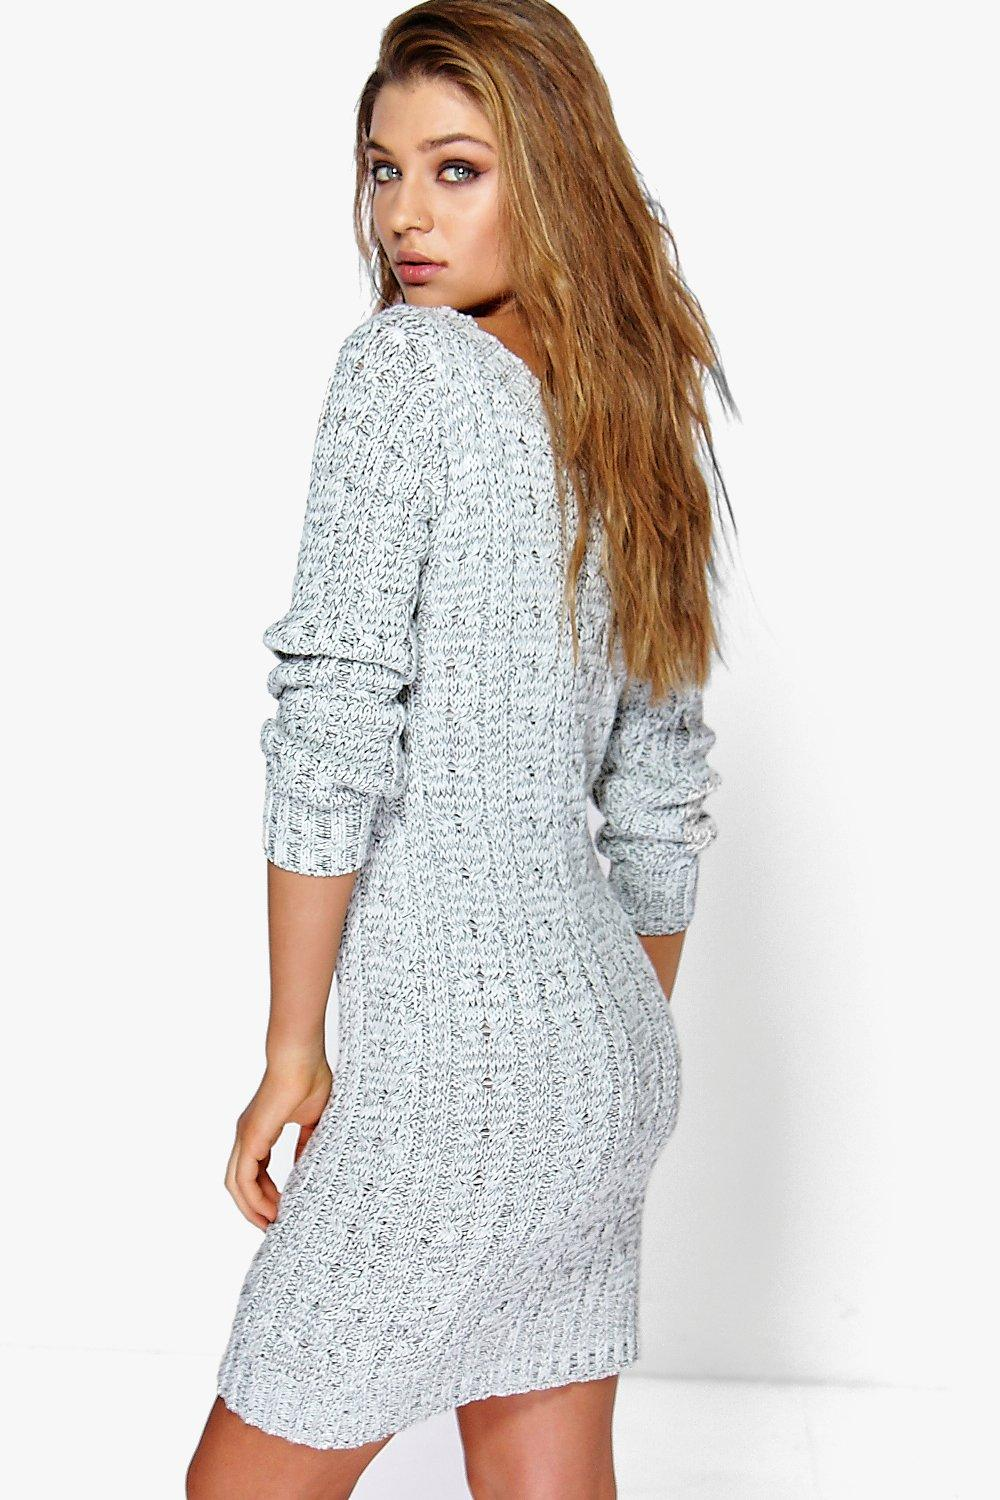 Women's %color %size Sweater Dresses That Fit and Flatter